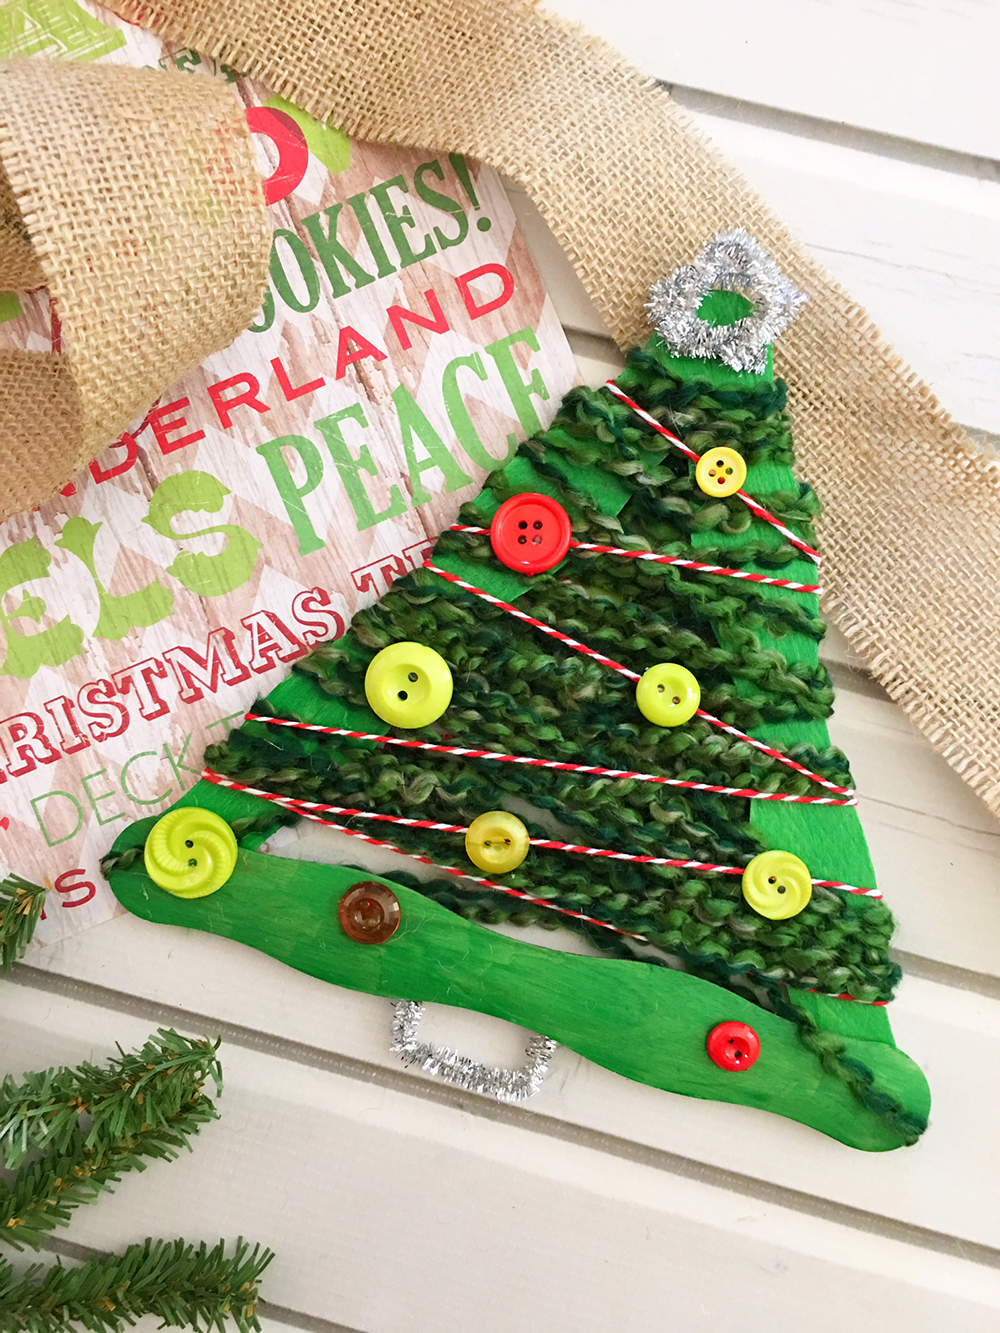 Yarn-Wrapped Christmas Tree Craft Stick Ornaments are a great holiday project for the whole family. They're so easy to make and a festive addition to your Christmas decor-glue silver pipe cleaner on bottom of craft stick tree to resemble a tree trunk